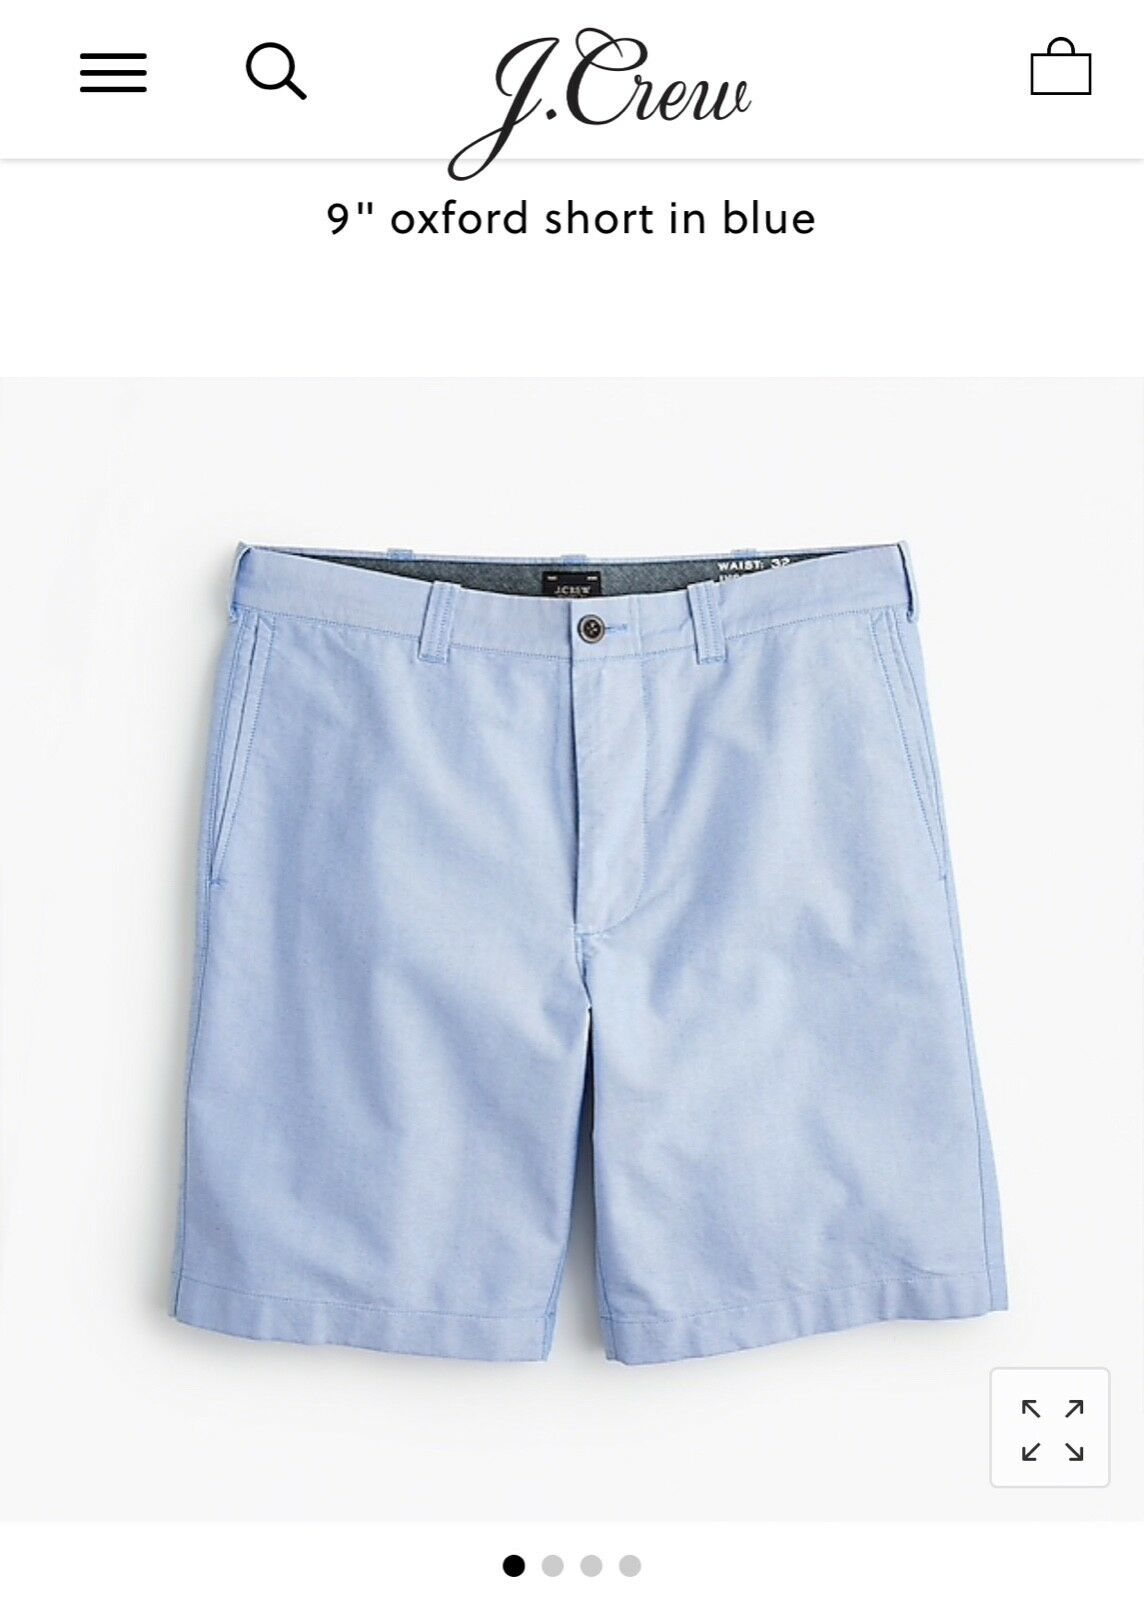 NWT J Crew 9  oxford short in bluee shorts size 35 brand new J0682